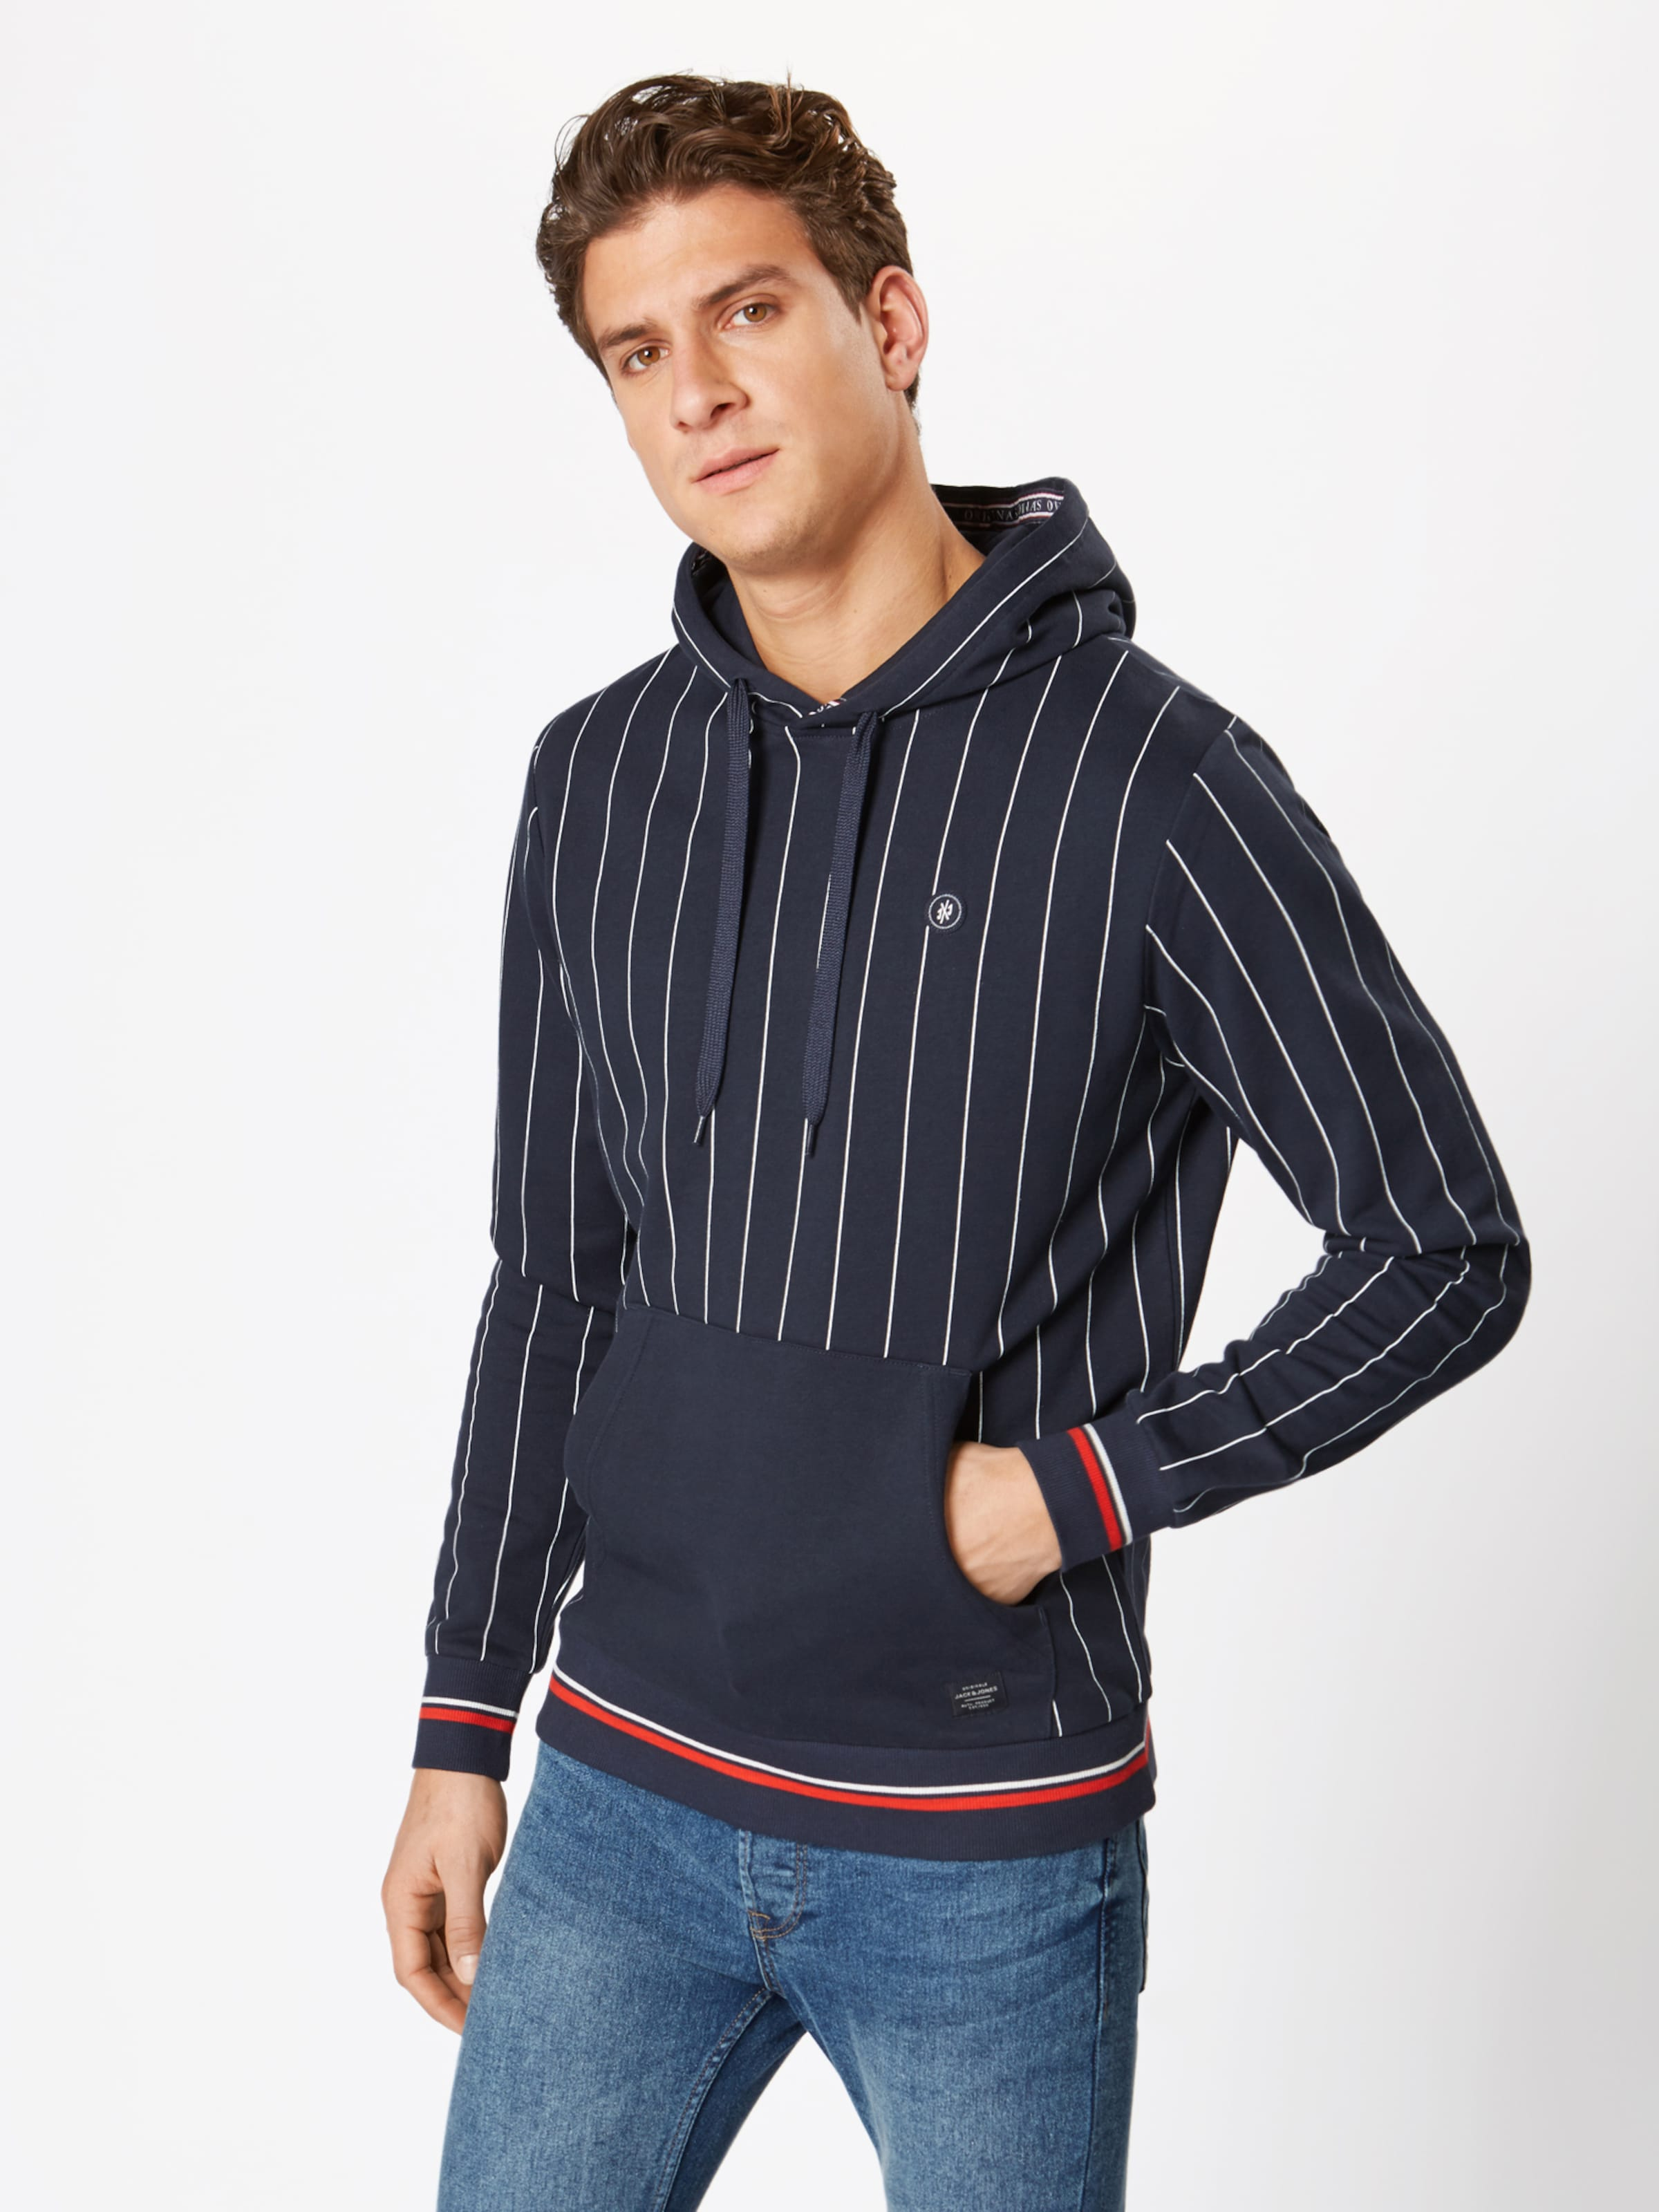 Jones shirt 'pinstripe' Bleu FoncéBlanc Jackamp; En Sweat SUqzGMpV